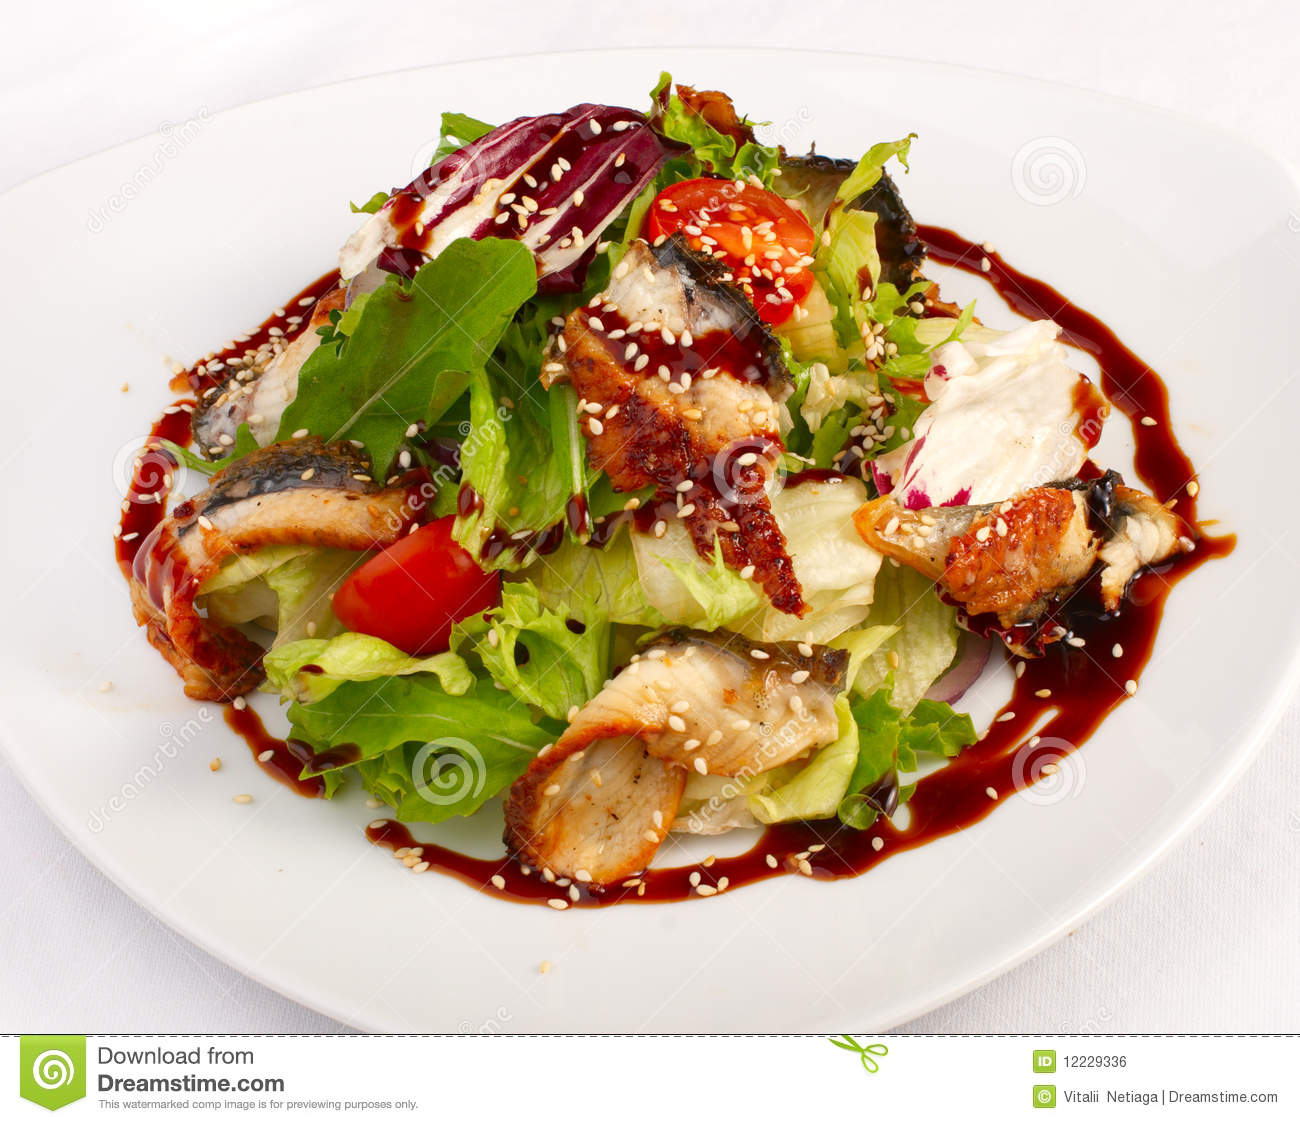 Royalty Free Stock Image: Salad with vegetables and fish